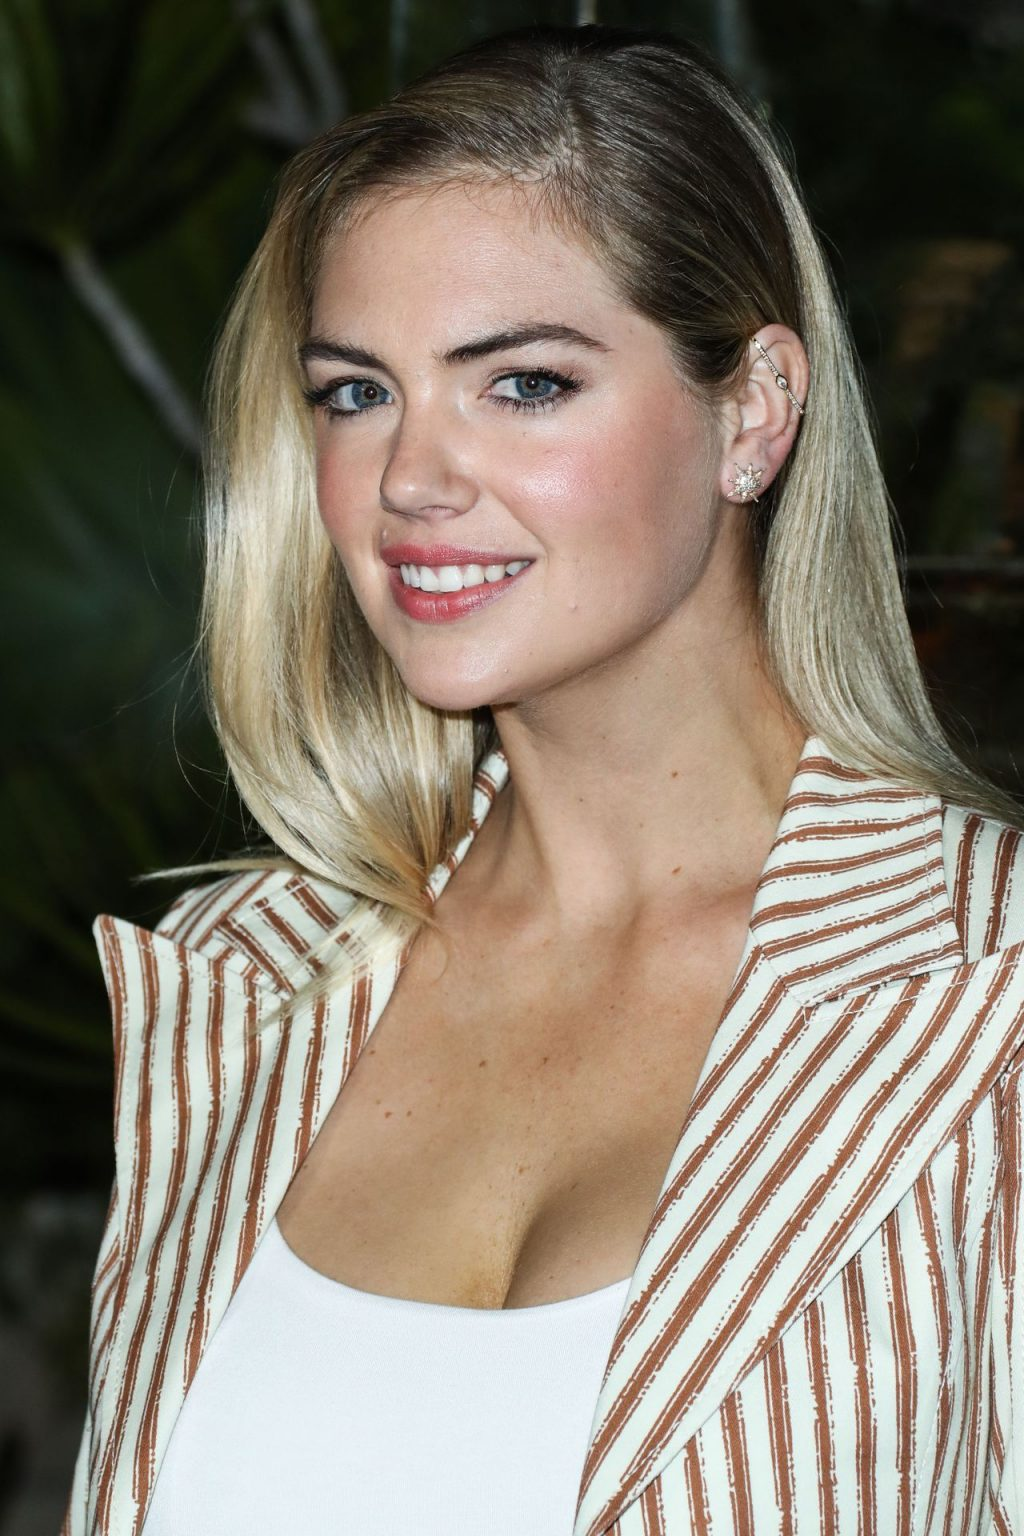 Kate Upton Sexy The Fappening Blog 89 1024x1536 - Kate Upton Attends Canada Goose And Vogue Cocktails & Conversations (104 Photos)